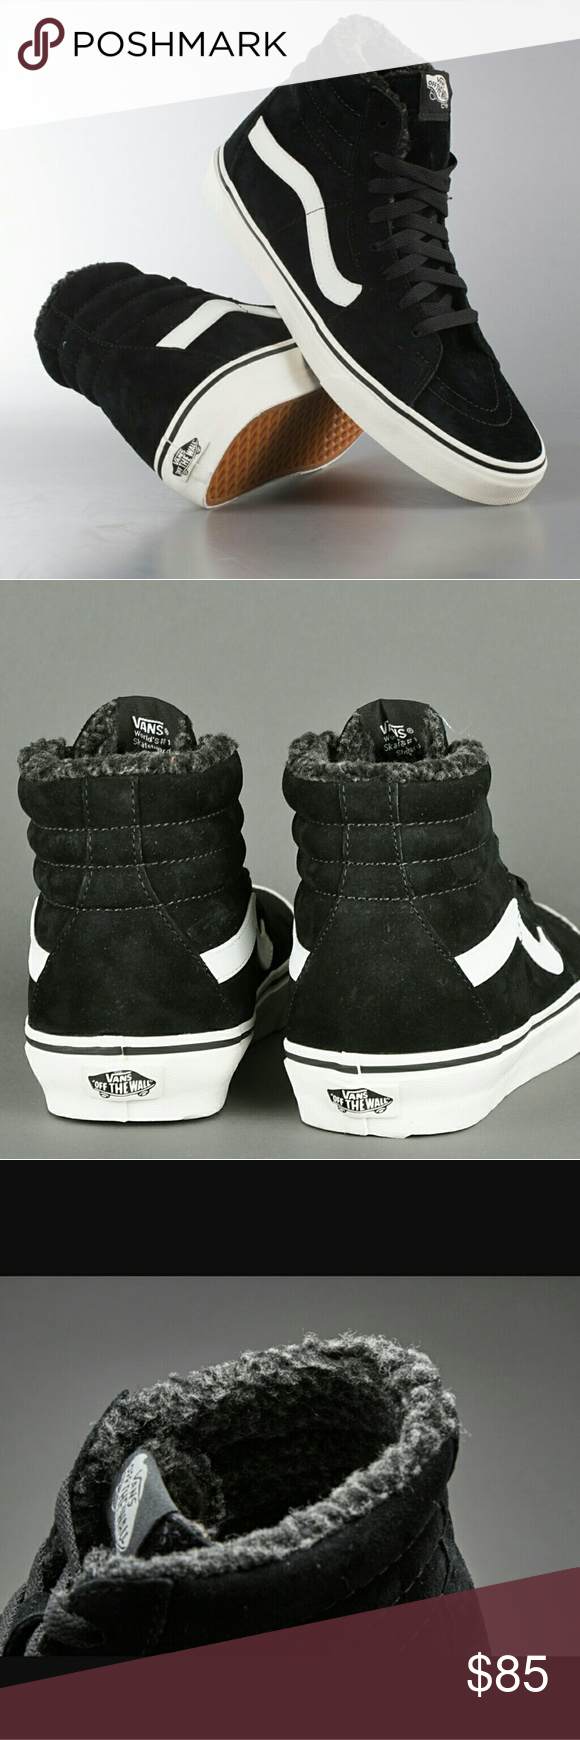 346645dadd SALEVANS PIG SUEDE FLEECE SK8-HI NEW VANS BRAND NEW (NO TAGS OR BOX) SOLD  OUT PIG SUEDE FLEECE SK8-HI BLACK SUEDE SIZE 9M 10.5W LACE UP HIGH TOP